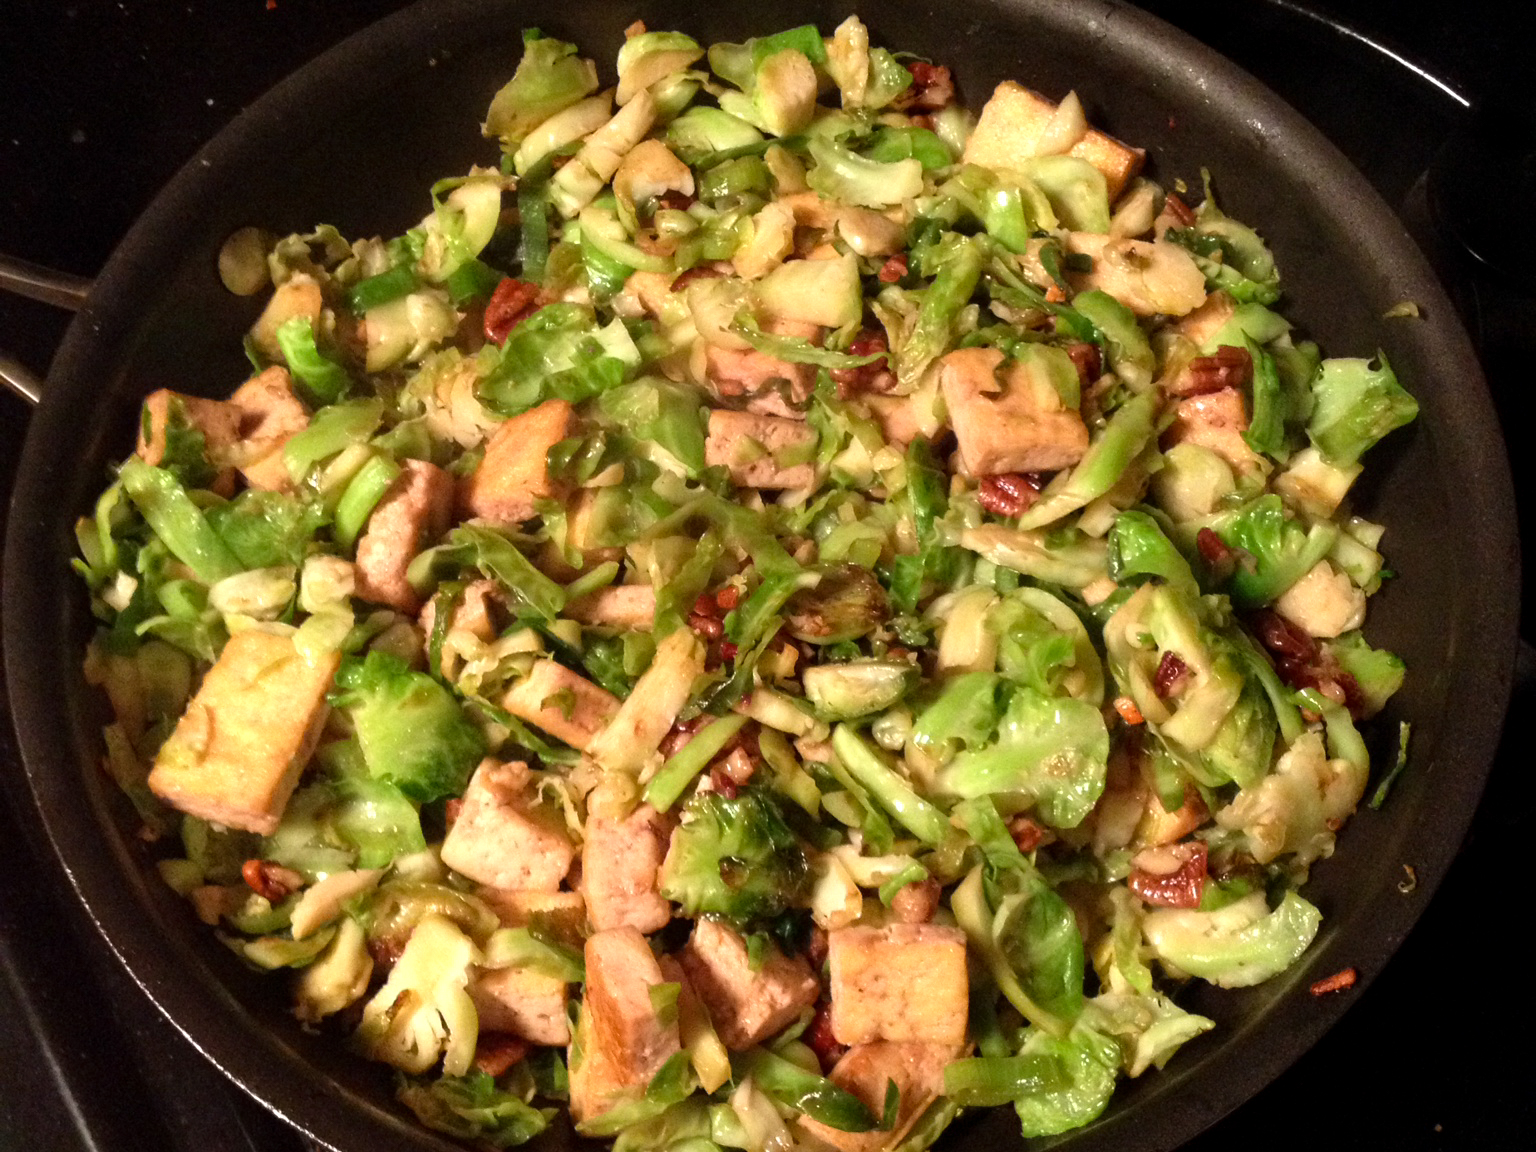 enter the shredded brussels sprout these sprouts are sliced thinly and ...